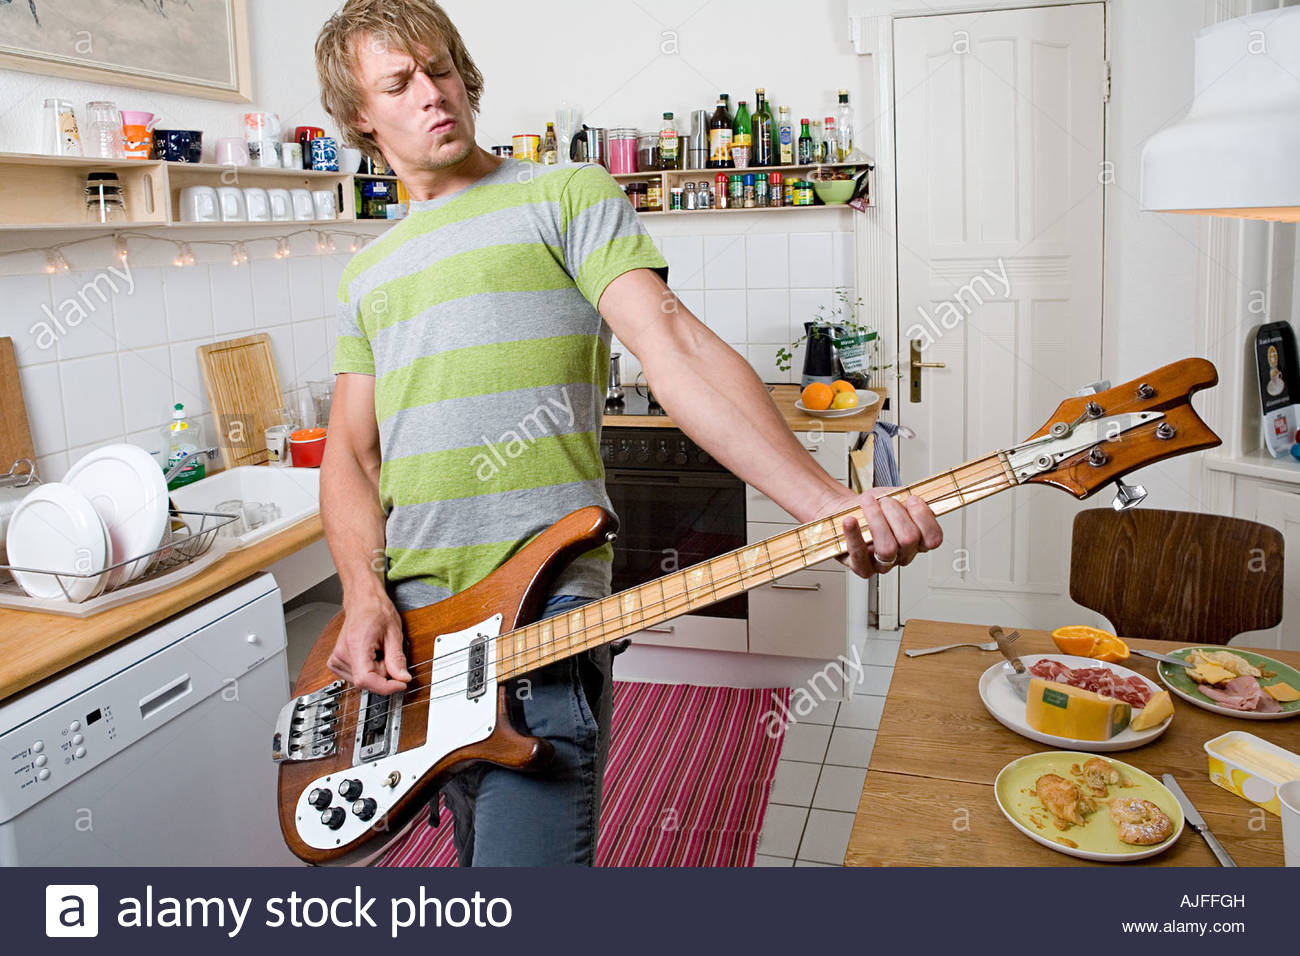 Man playing guitar in kitchen - Stock Image